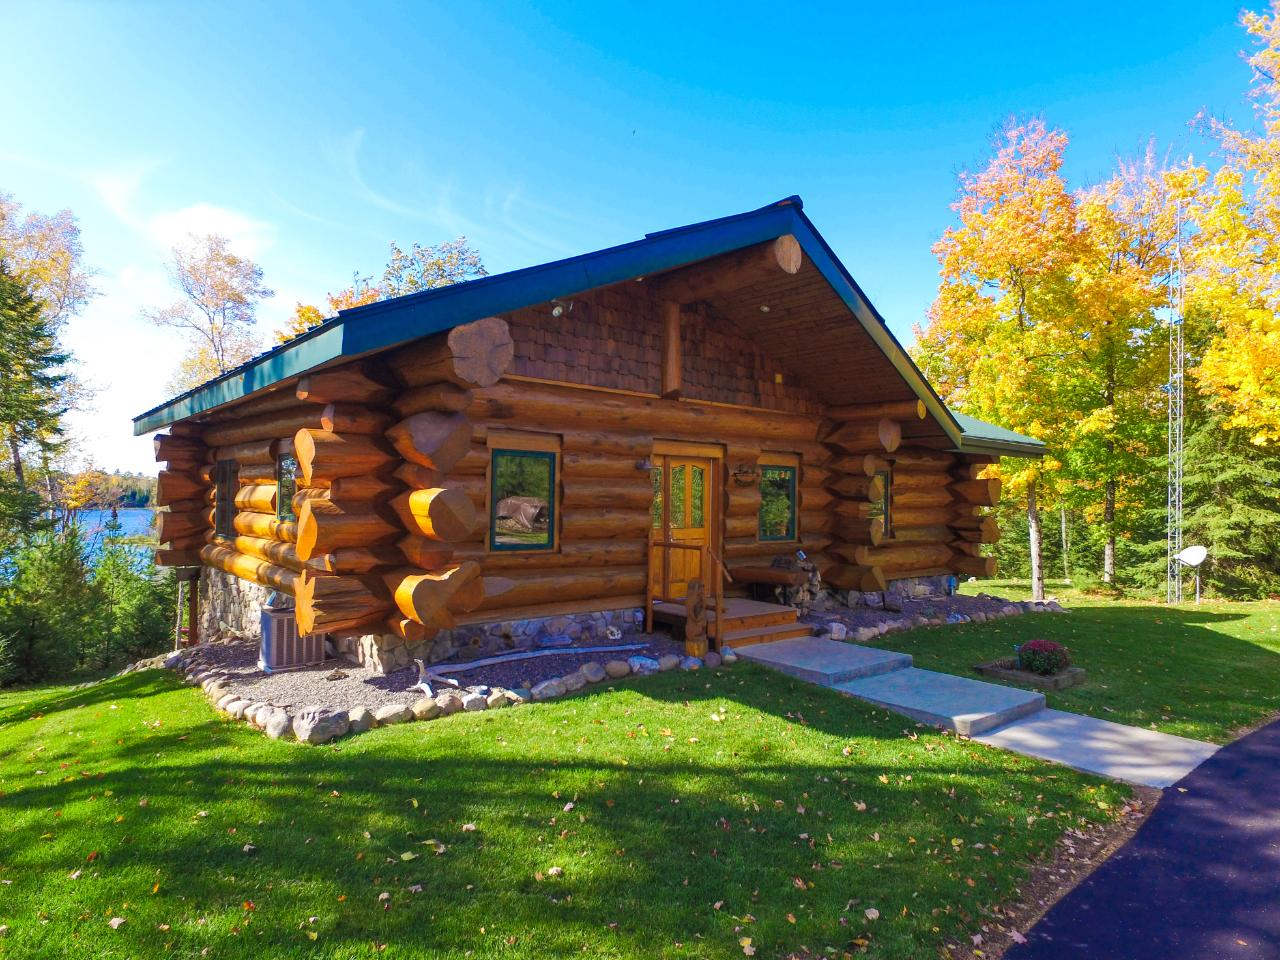 Magnificent Pioneer Log Home with Western exposure on one of Boulder Junction/Presque Isle's premier lakes w/48x45 in-floor ht'd garage w/room for RV Storage.This 3BR, 3BA home features high-end appliances, granite counters, maple cabinets, master ensuite /travertine tile, in-floor heat, air handler w/AC, high efficiency condensing boiler, & Trex decking. A short distance to downtown Boulder Junction offers easy access to many restaurants, biking & snowmobile trails. The property consists of 2.6 acres of wooded high ground, 252' of frontage with year-round sunsets overlooking thousands of feet of state-owned property! The vacant adjacent lot with 207' frontage and 2.3 acres is also available. Pioneer Log Homes are one of the world's top luxury log home builders using logs out of British Columbia, the Majestic Western Cedar. Wildcat Lake is 300 acres, 38' deep & sand bottom and has connecting lake, Big Kitten is 50 acres, 22' deep, & over 90% state-owned.